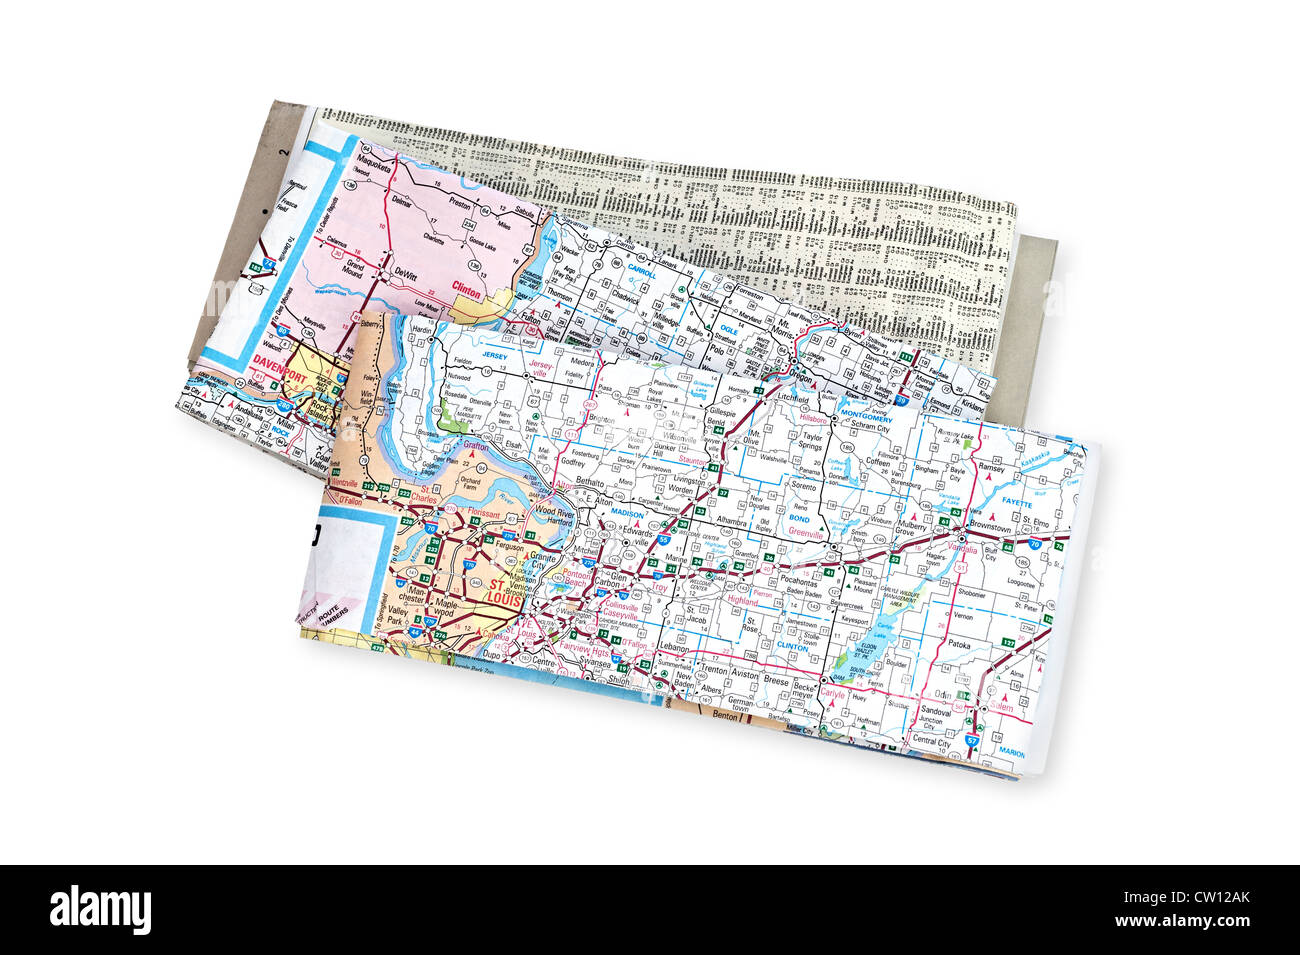 Road maps for use during vacation, business and general travel guidance. - Stock Image